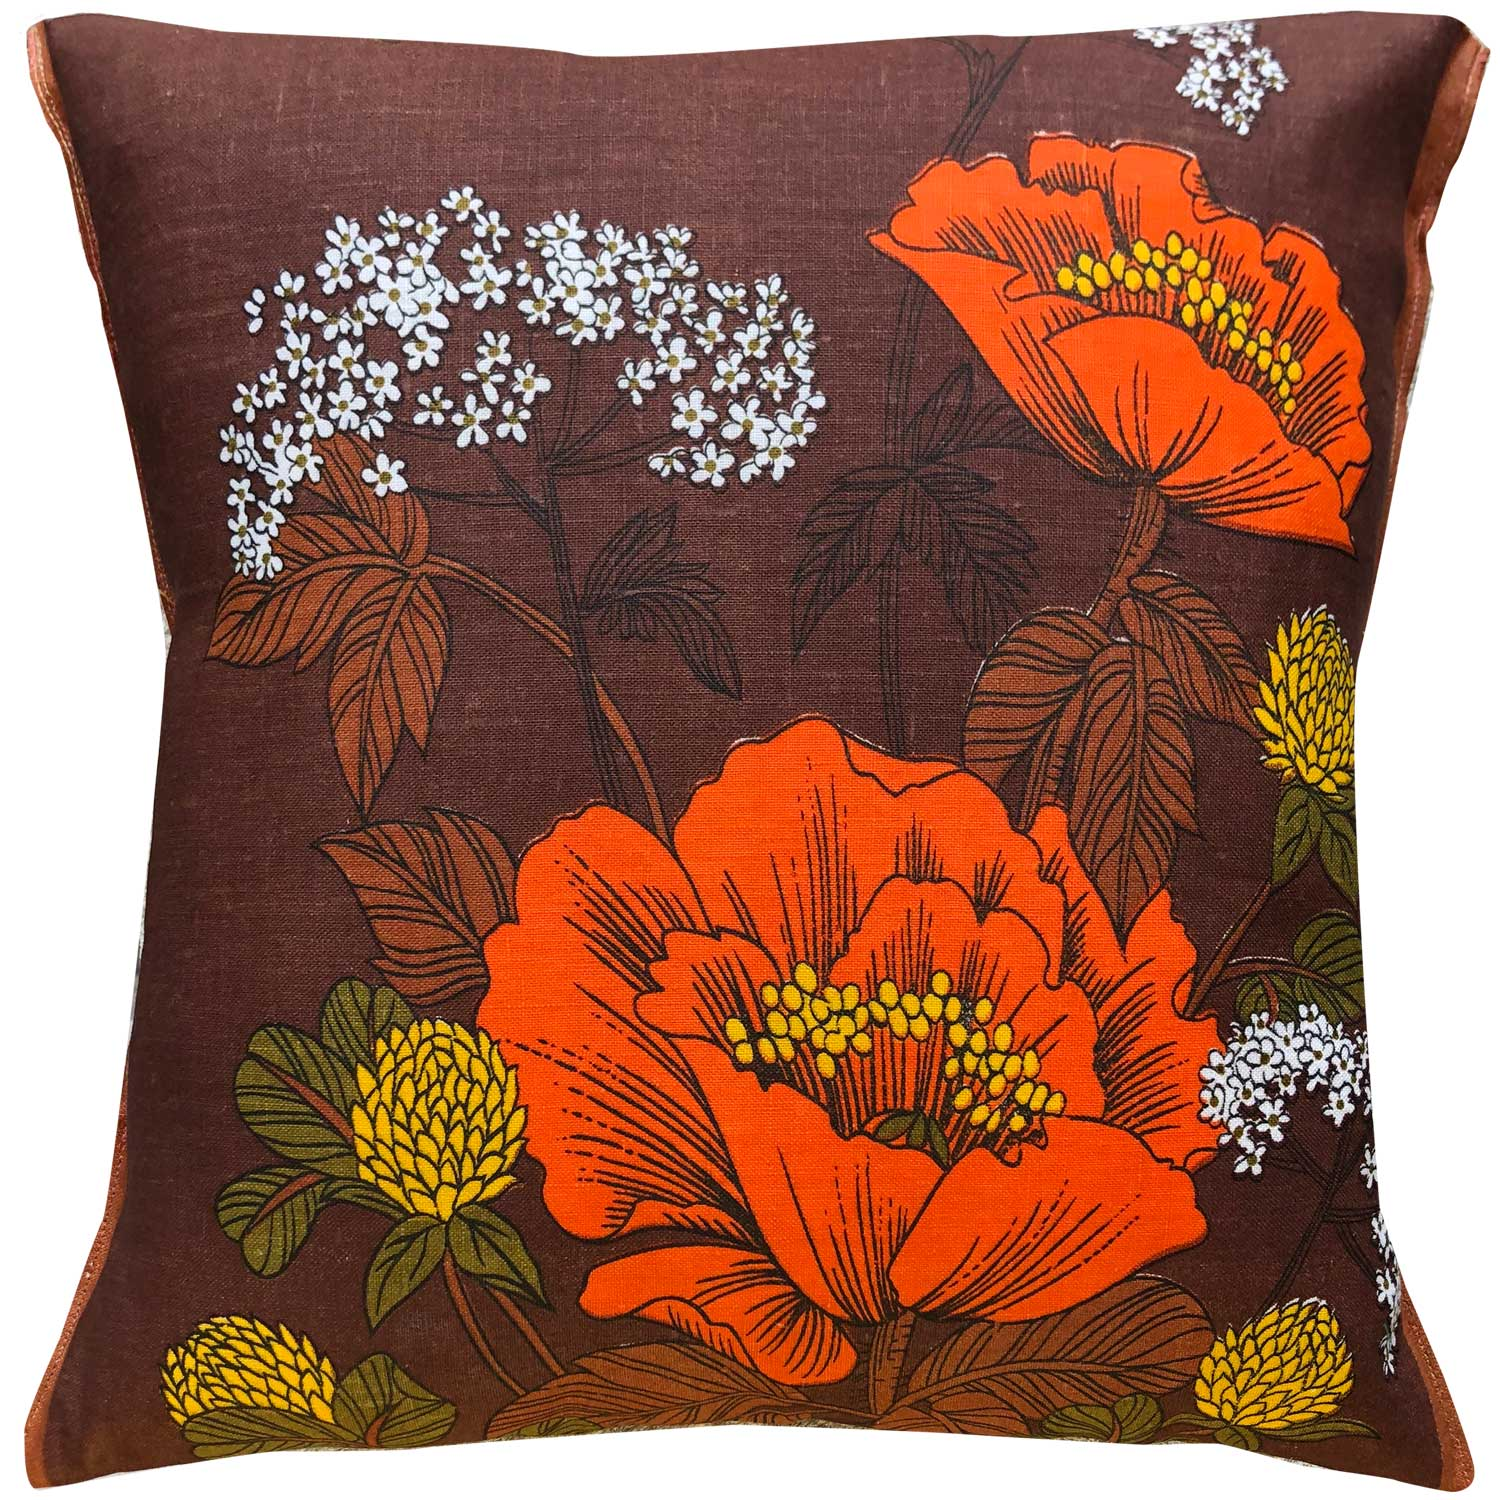 Orange poppies on chocolate brown vintage linen teatowel cushion cover